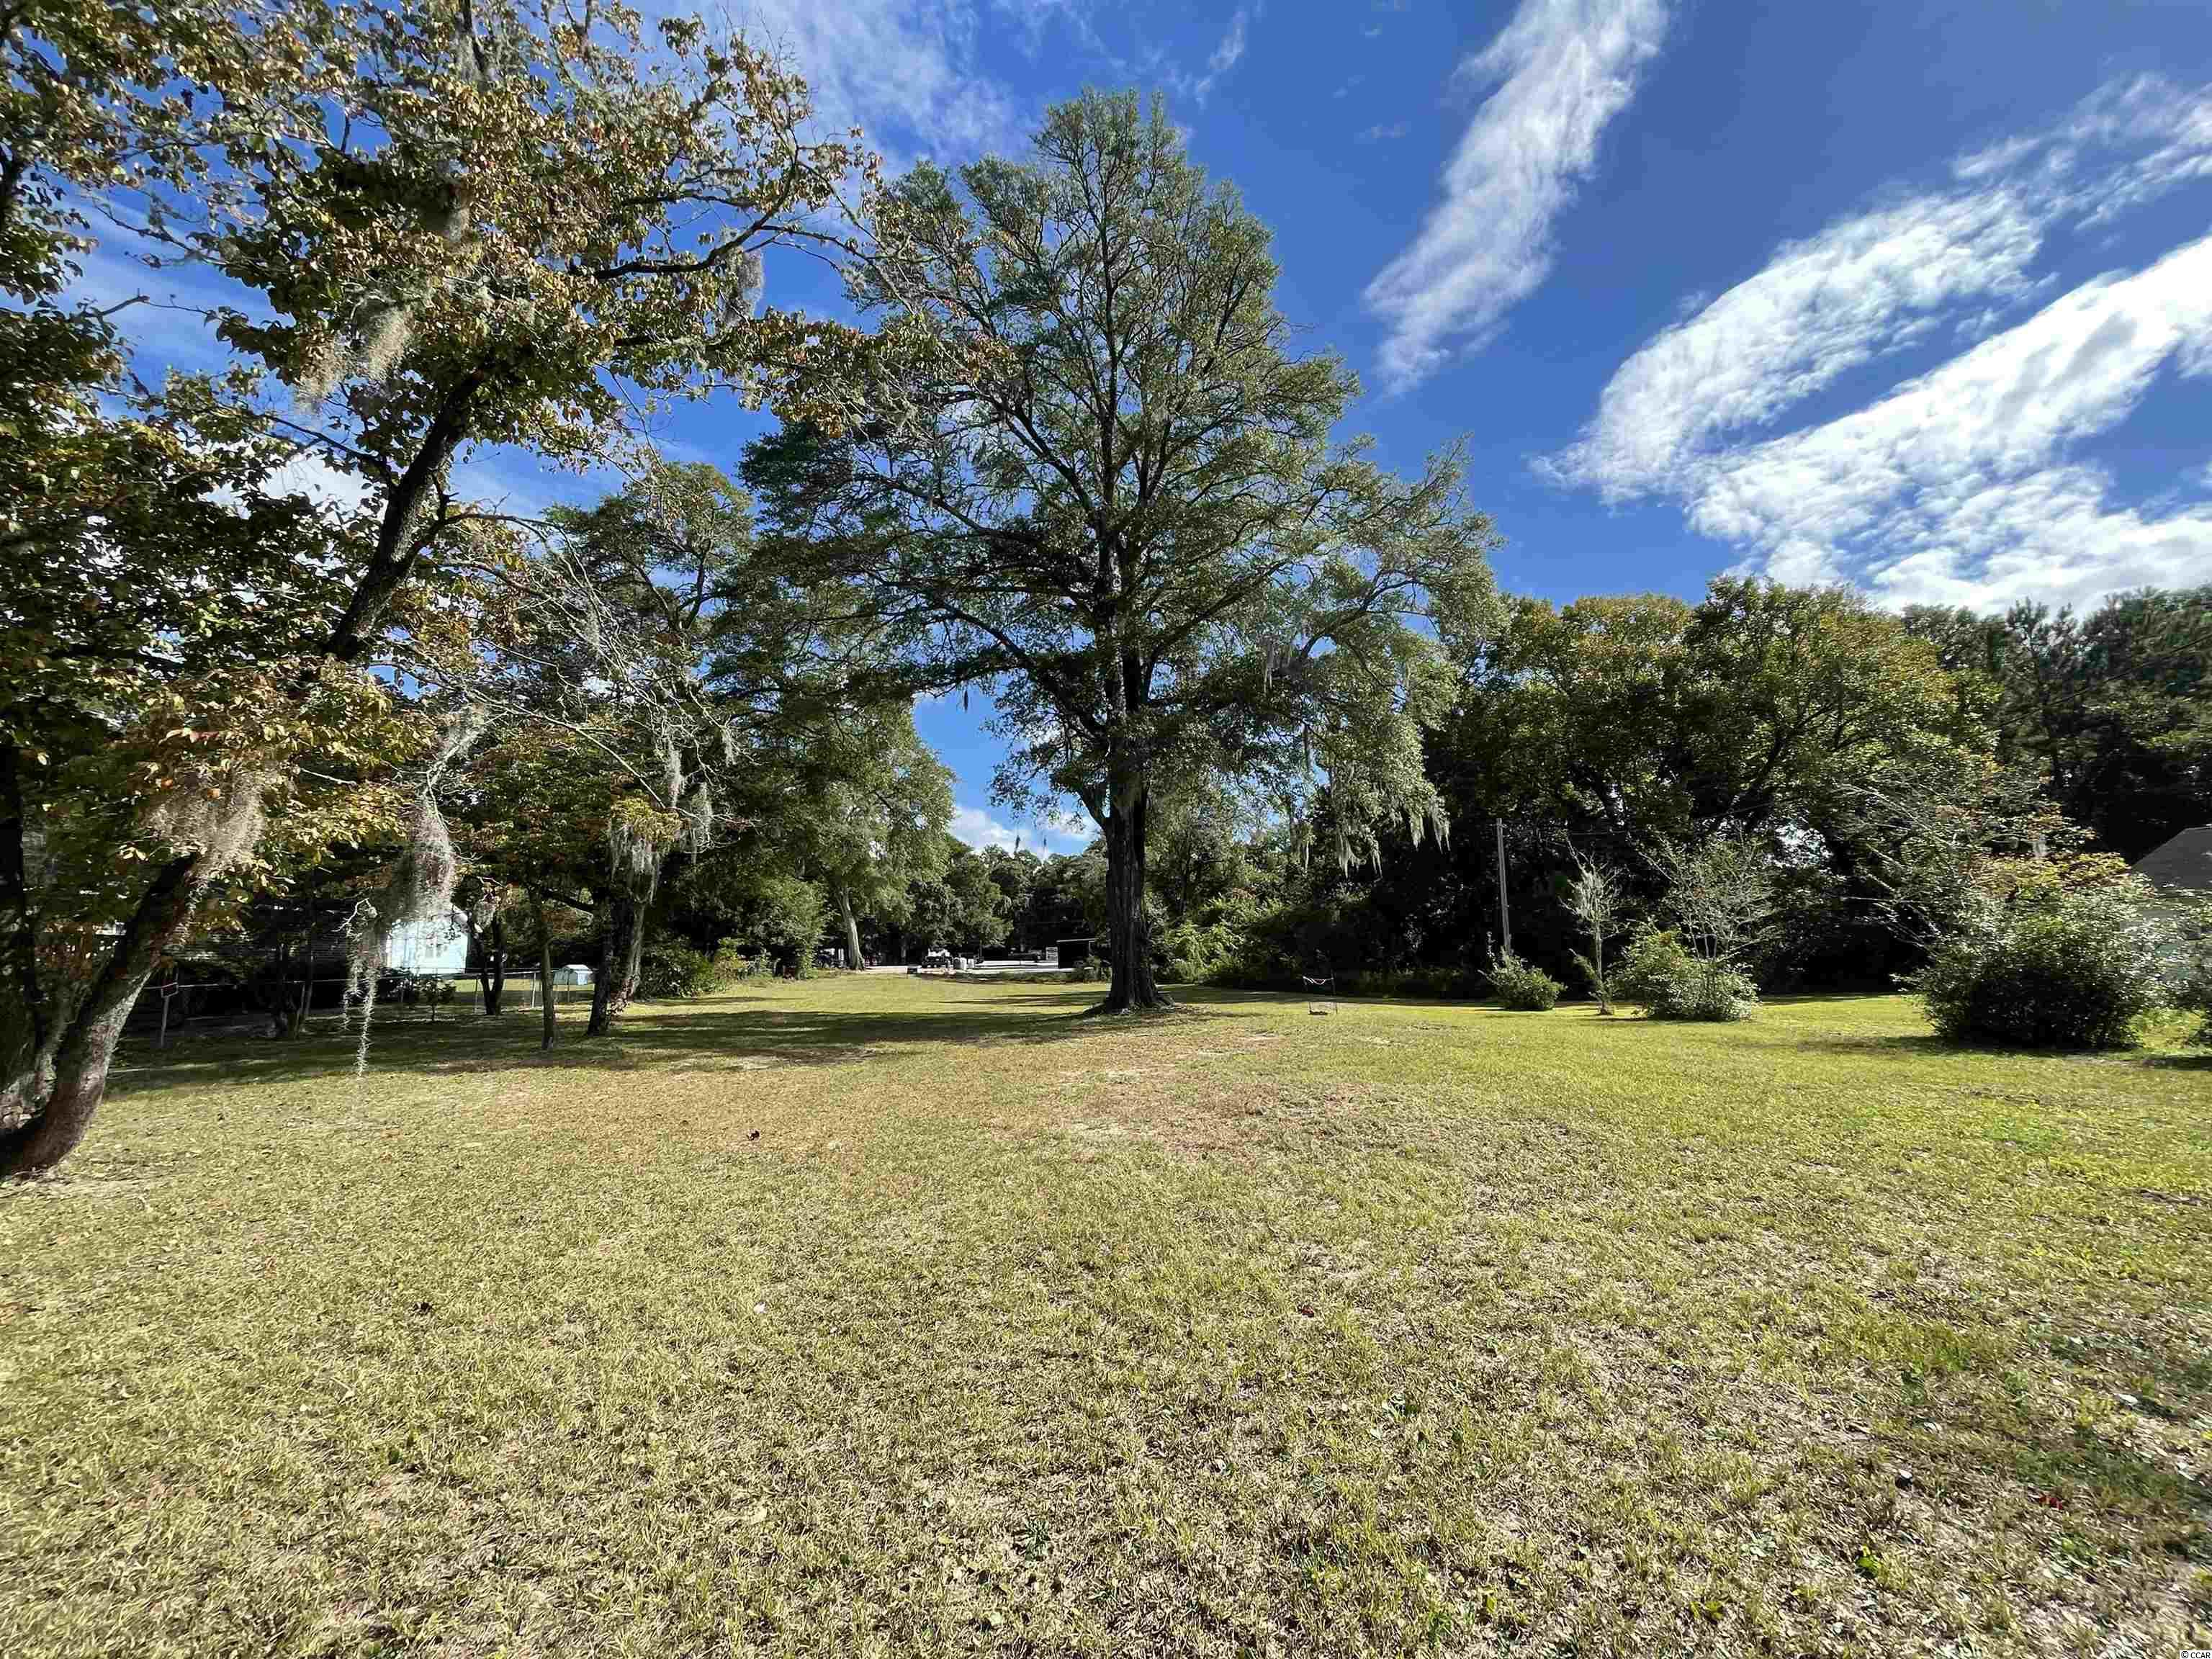 Drastically reduced price for not one but 2 cleared lots! This historic exceptional location sits on the horseshoe in Little River where the Casino Boat is located and the WORLDS famous Blue Crab Festival is held every year. This spacious lot offers so much adventure with Intracostal Waterway views, walking distance from local restaurants (with the best fresh seafood around), and a short boat ride from Bird Island. Live oaks on this just shy of a half acre will sure make a fantastic spot for your new home, investment...let your imagination run wild! Just minutes from the heart of Myrtle Beach, and a short distance from the North Carolina line lets you have the best of both worlds.